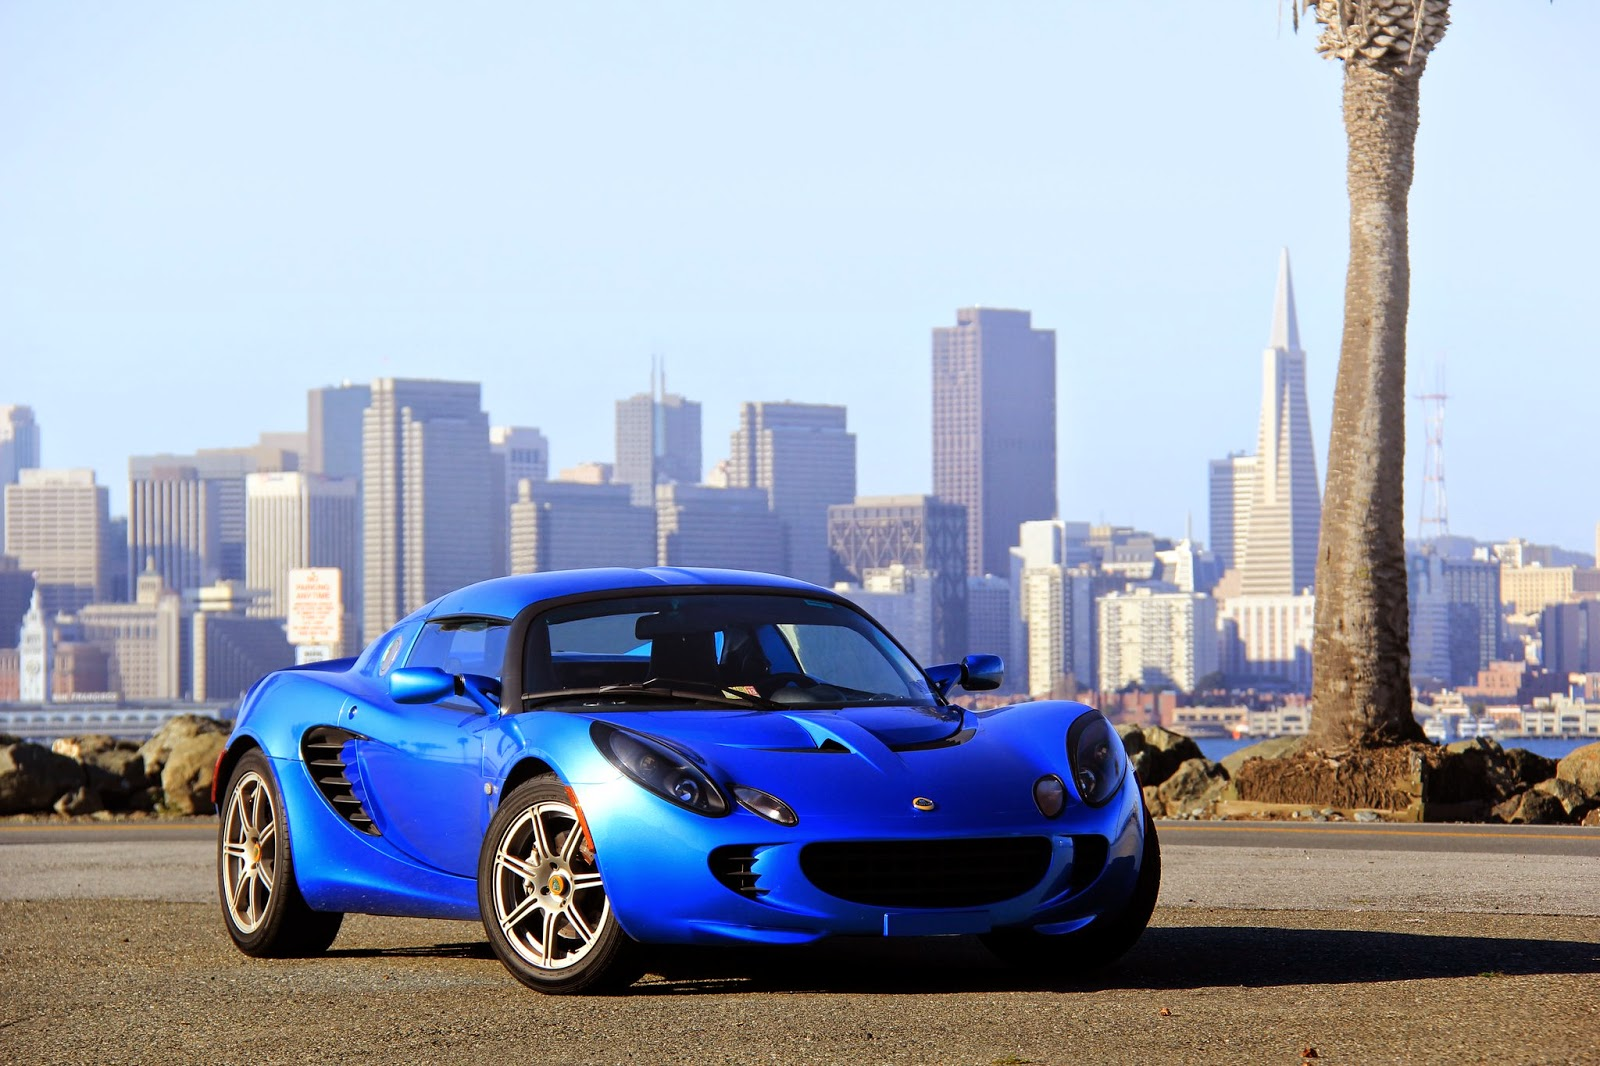 Thestradman chasing cars roadtrip san francisco to park city i met the current owner at his downtown sf condo and quickly completed all necessary paperwork finally getting the keys to my new elise vanachro Choice Image